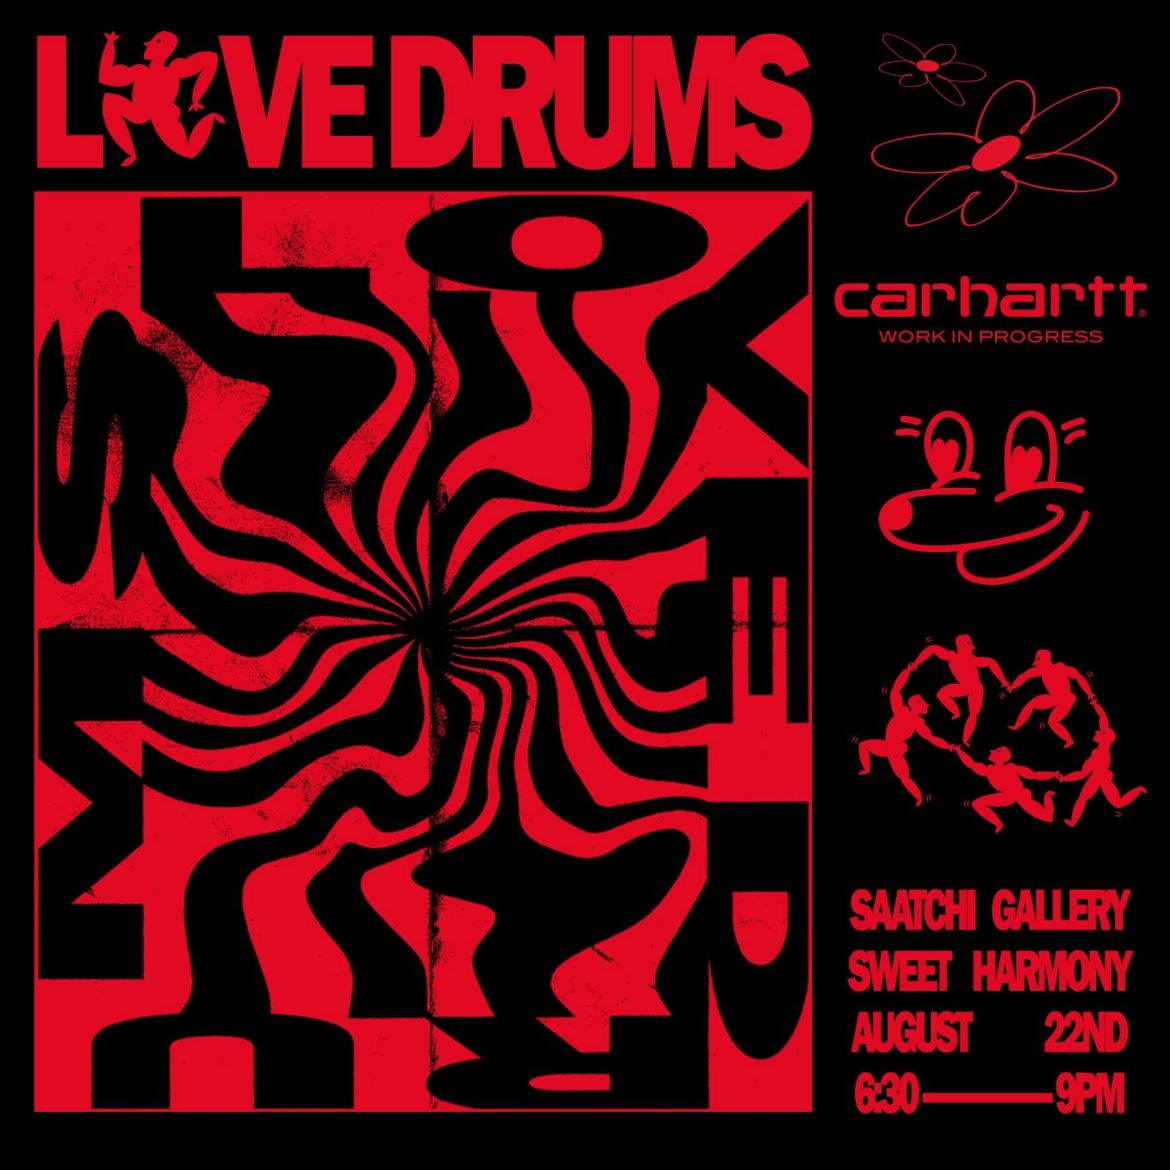 Love drums saatchi gallery lates